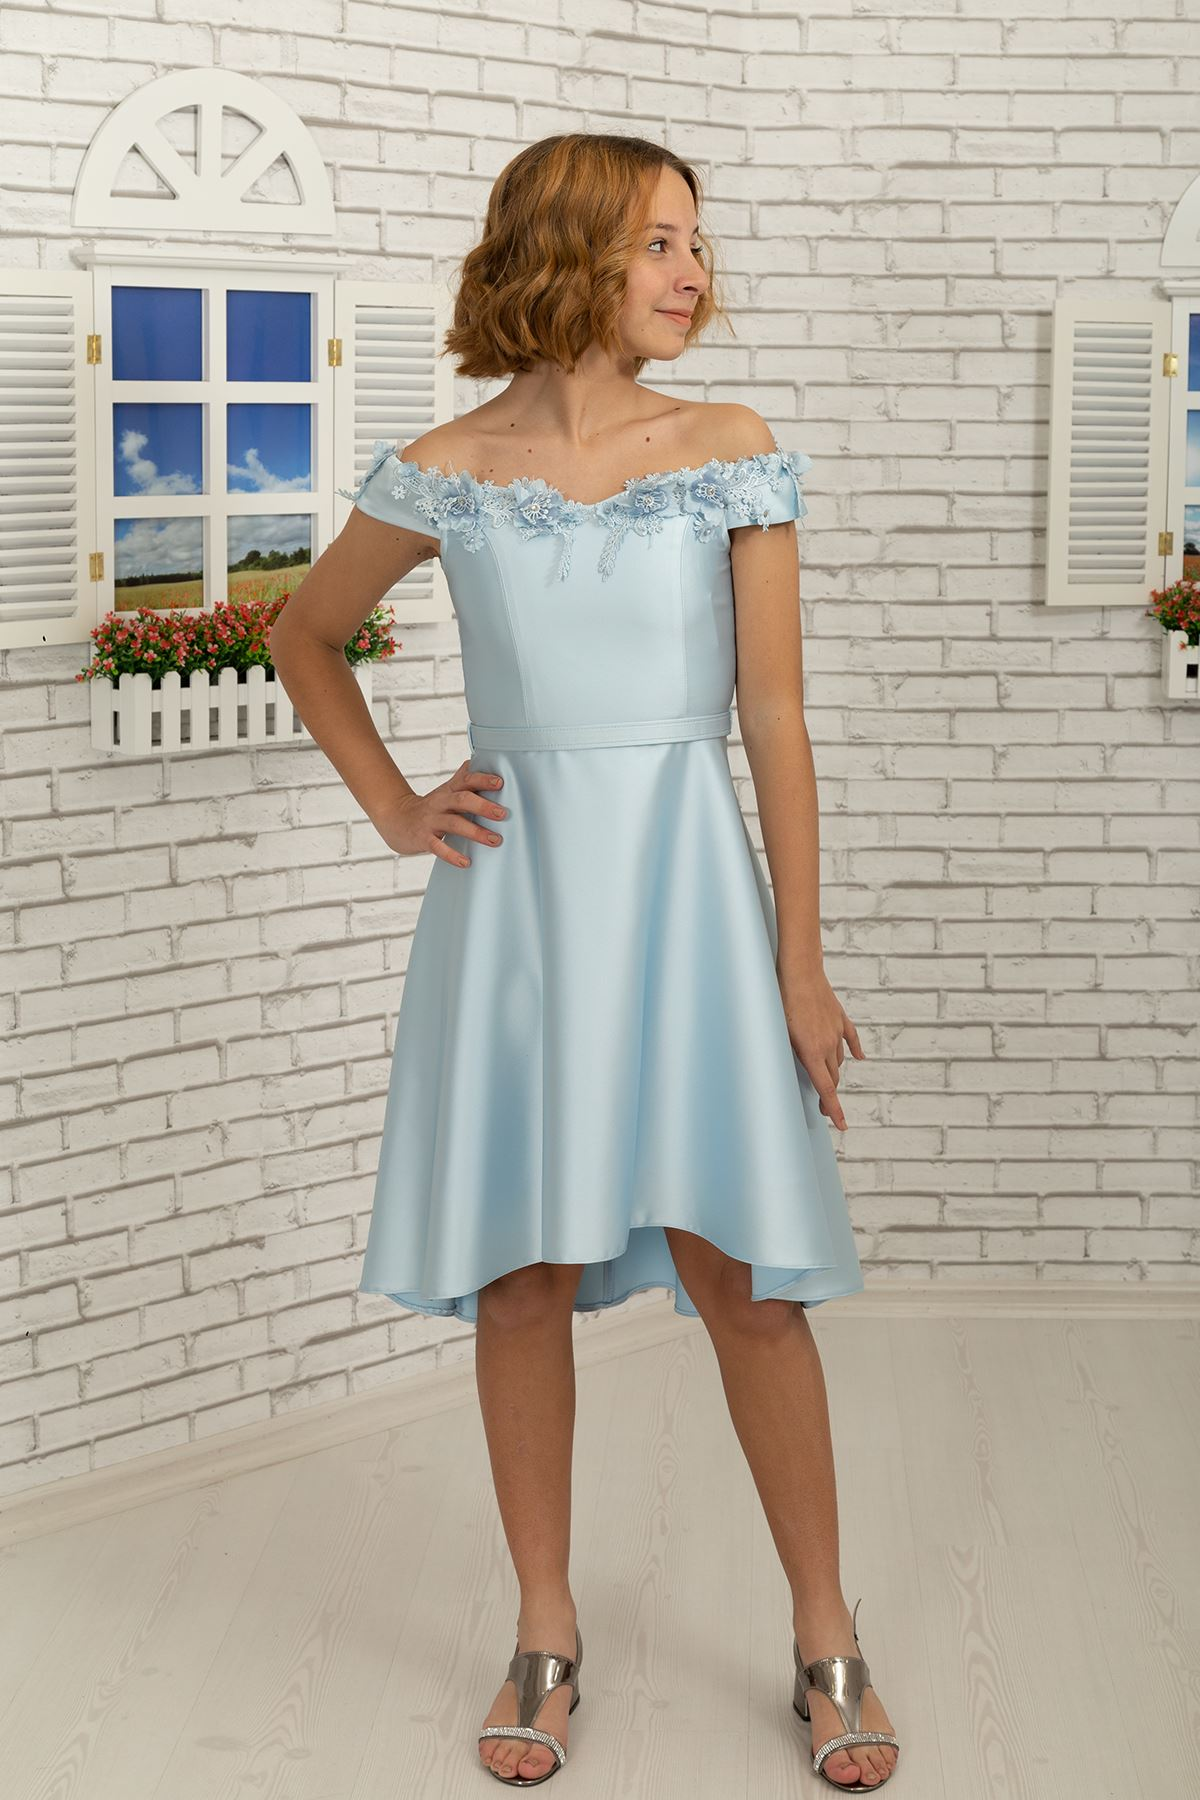 Falling on the Shoulder coller detail, 3 dimentional flower, Satin Girl Evening Dress 484 Light Blue